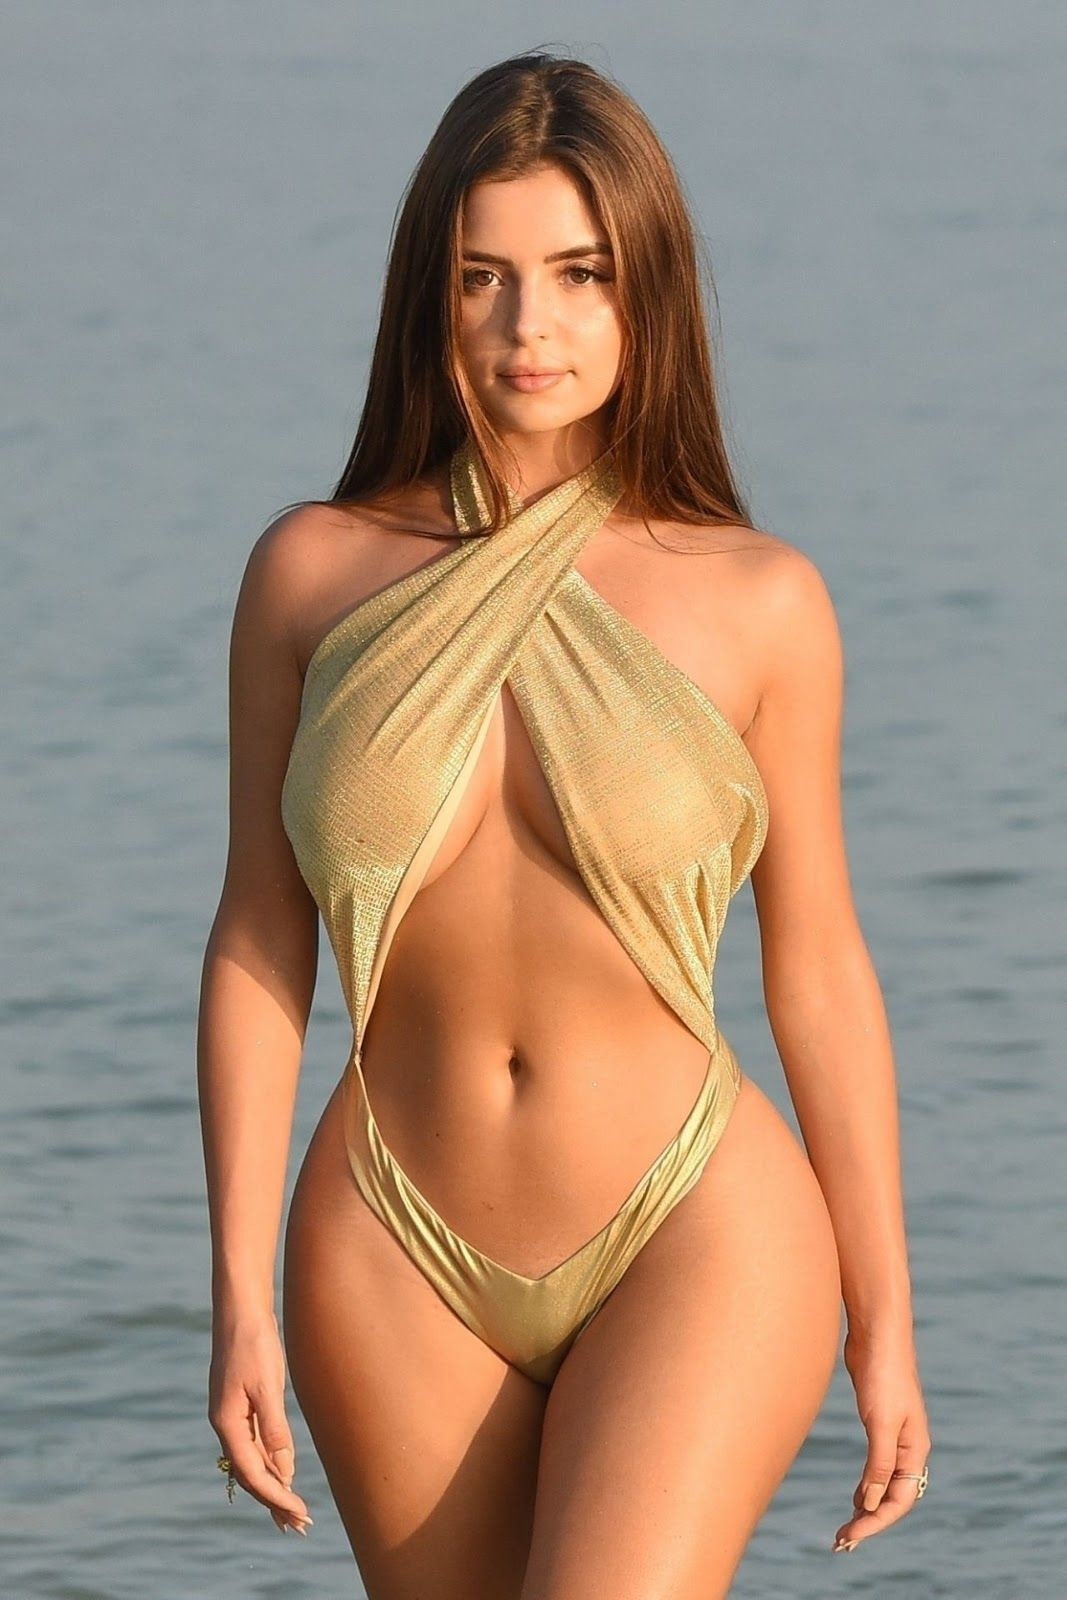 59f5ea2b022 post-feature-image | Demi Rose | Gold swimsuit, Demi rose, Demi rose ...